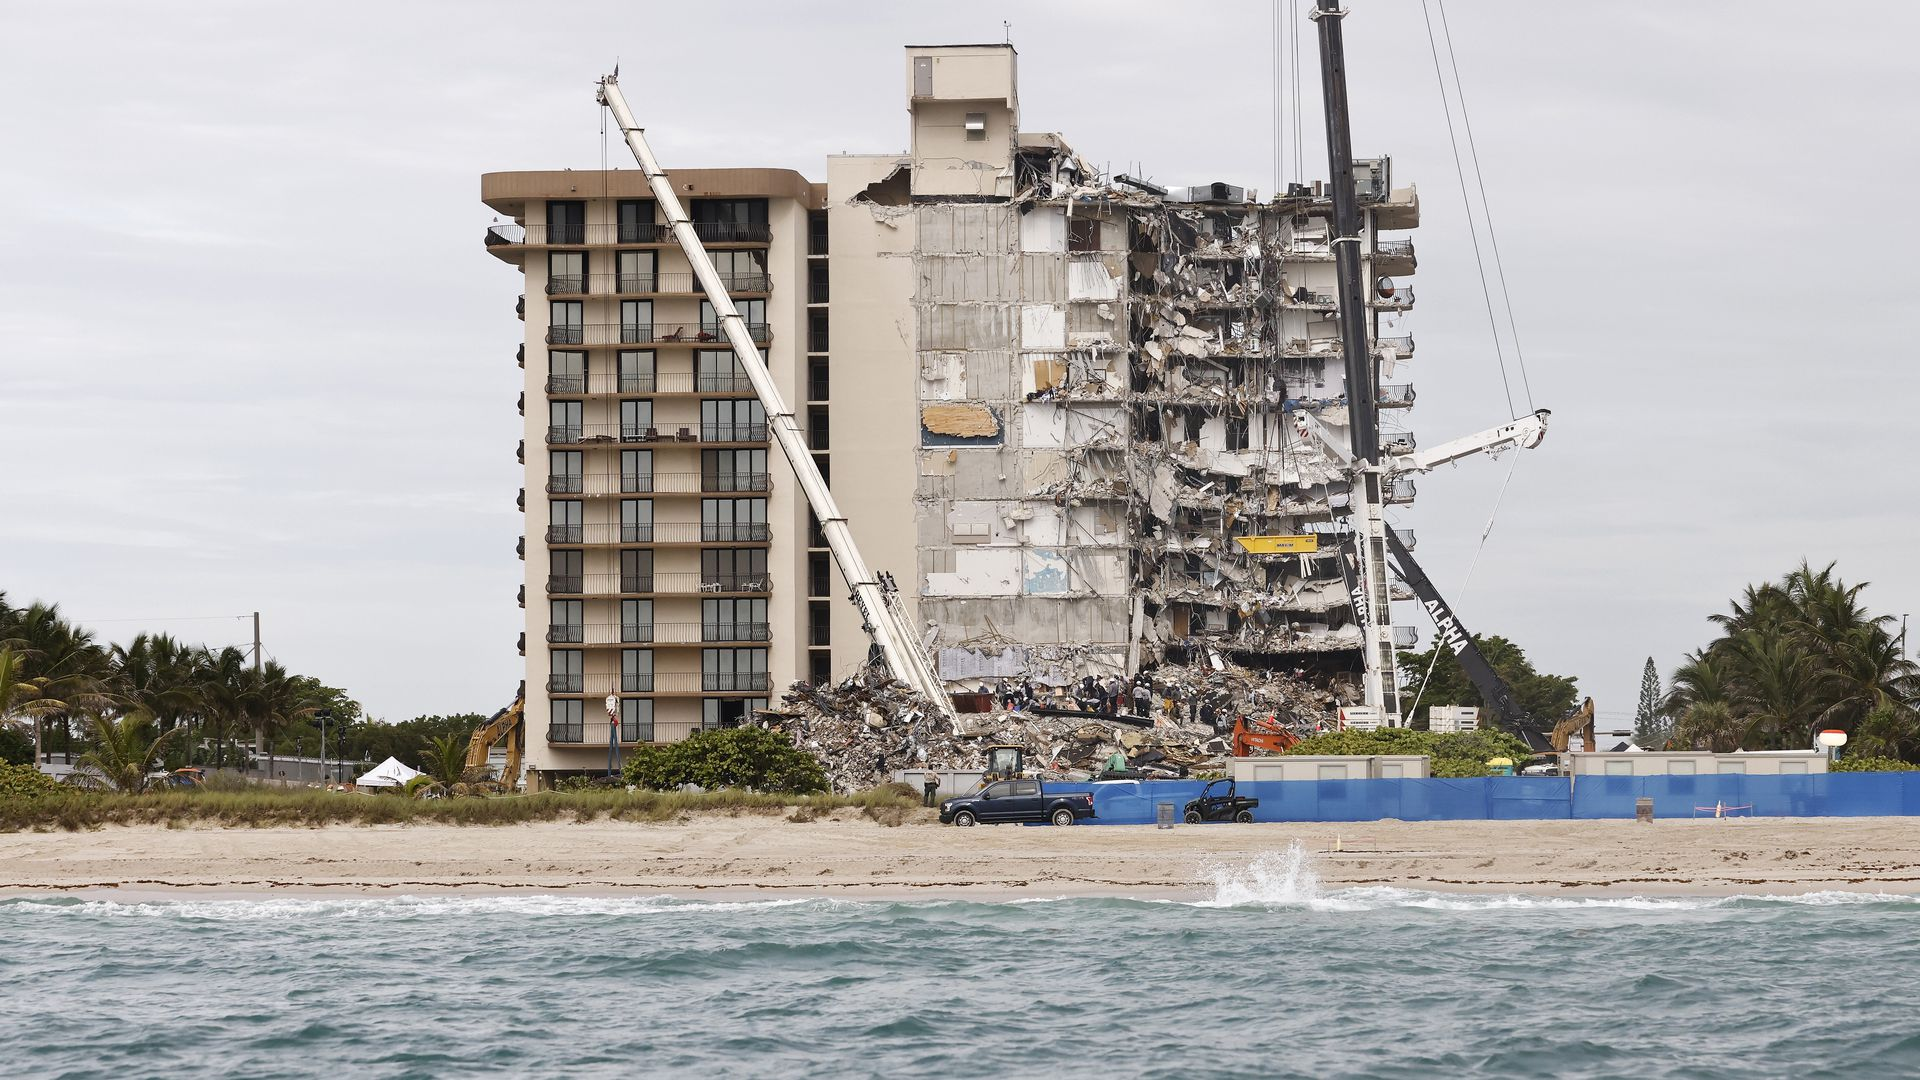 Theories emerge in early stages of investigation into Surfside condo collapse